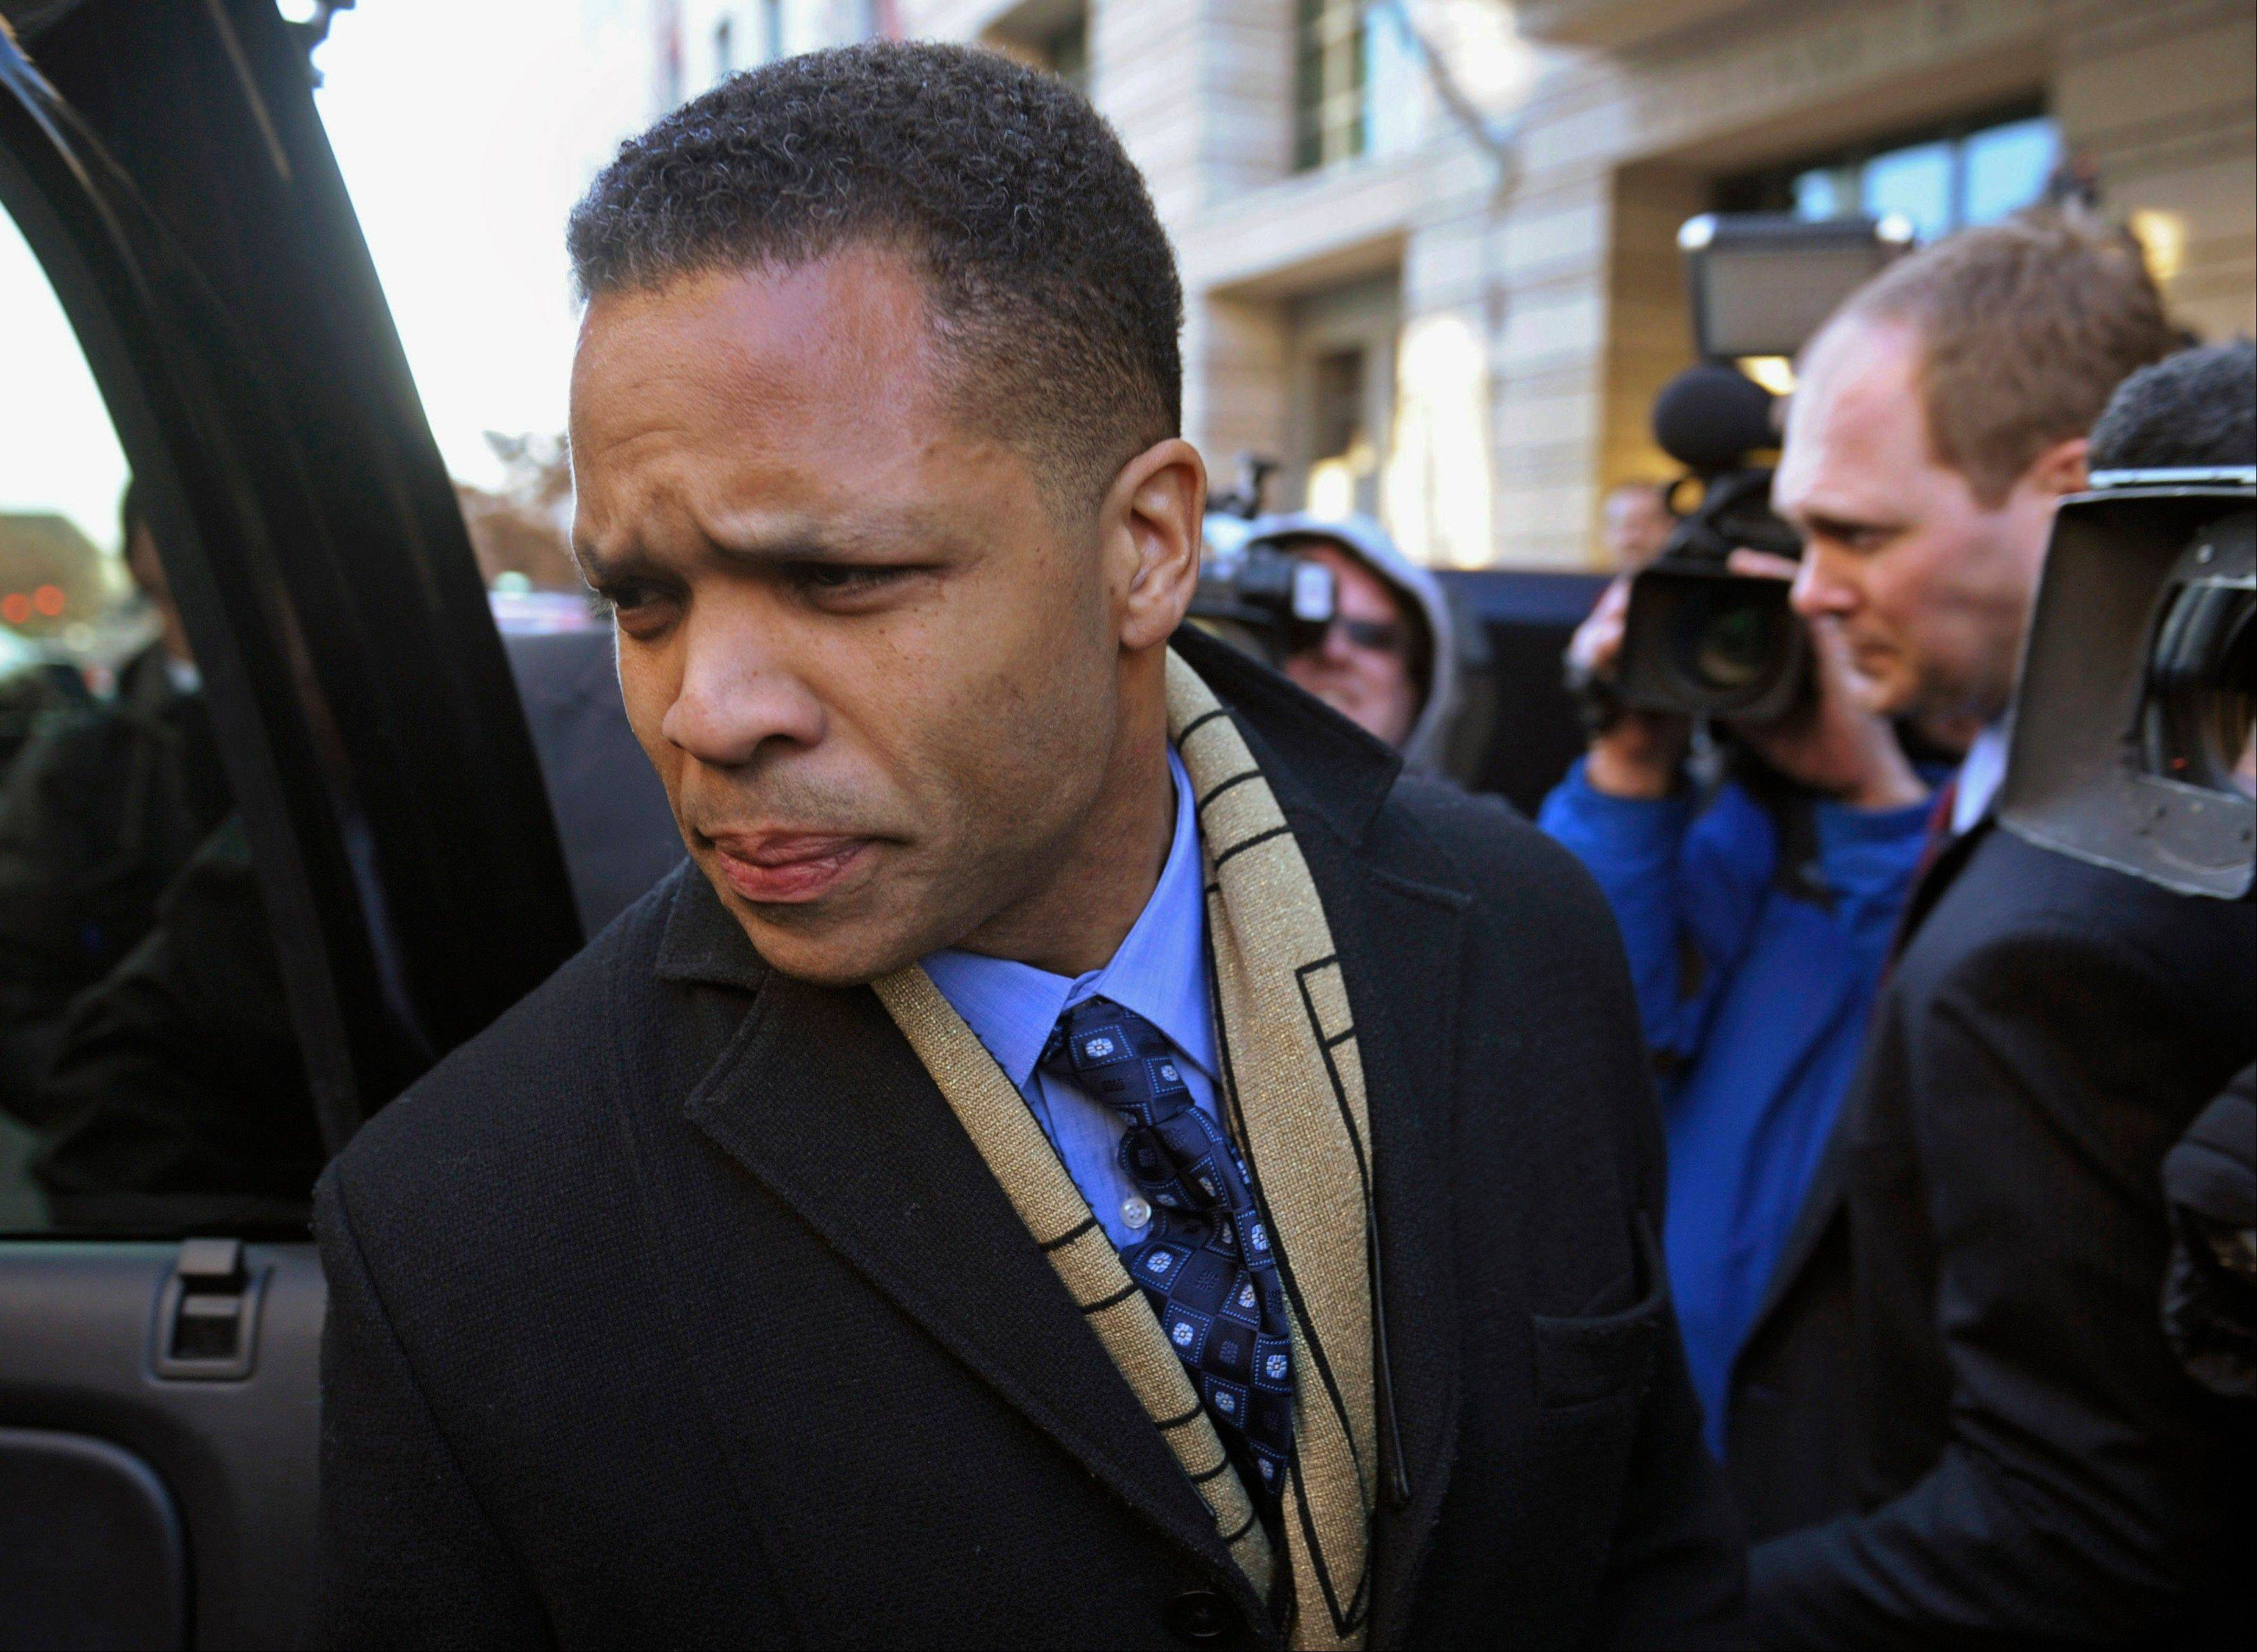 Former Congressman Jesse Jackson Jr. will be sentenced Wednesday.